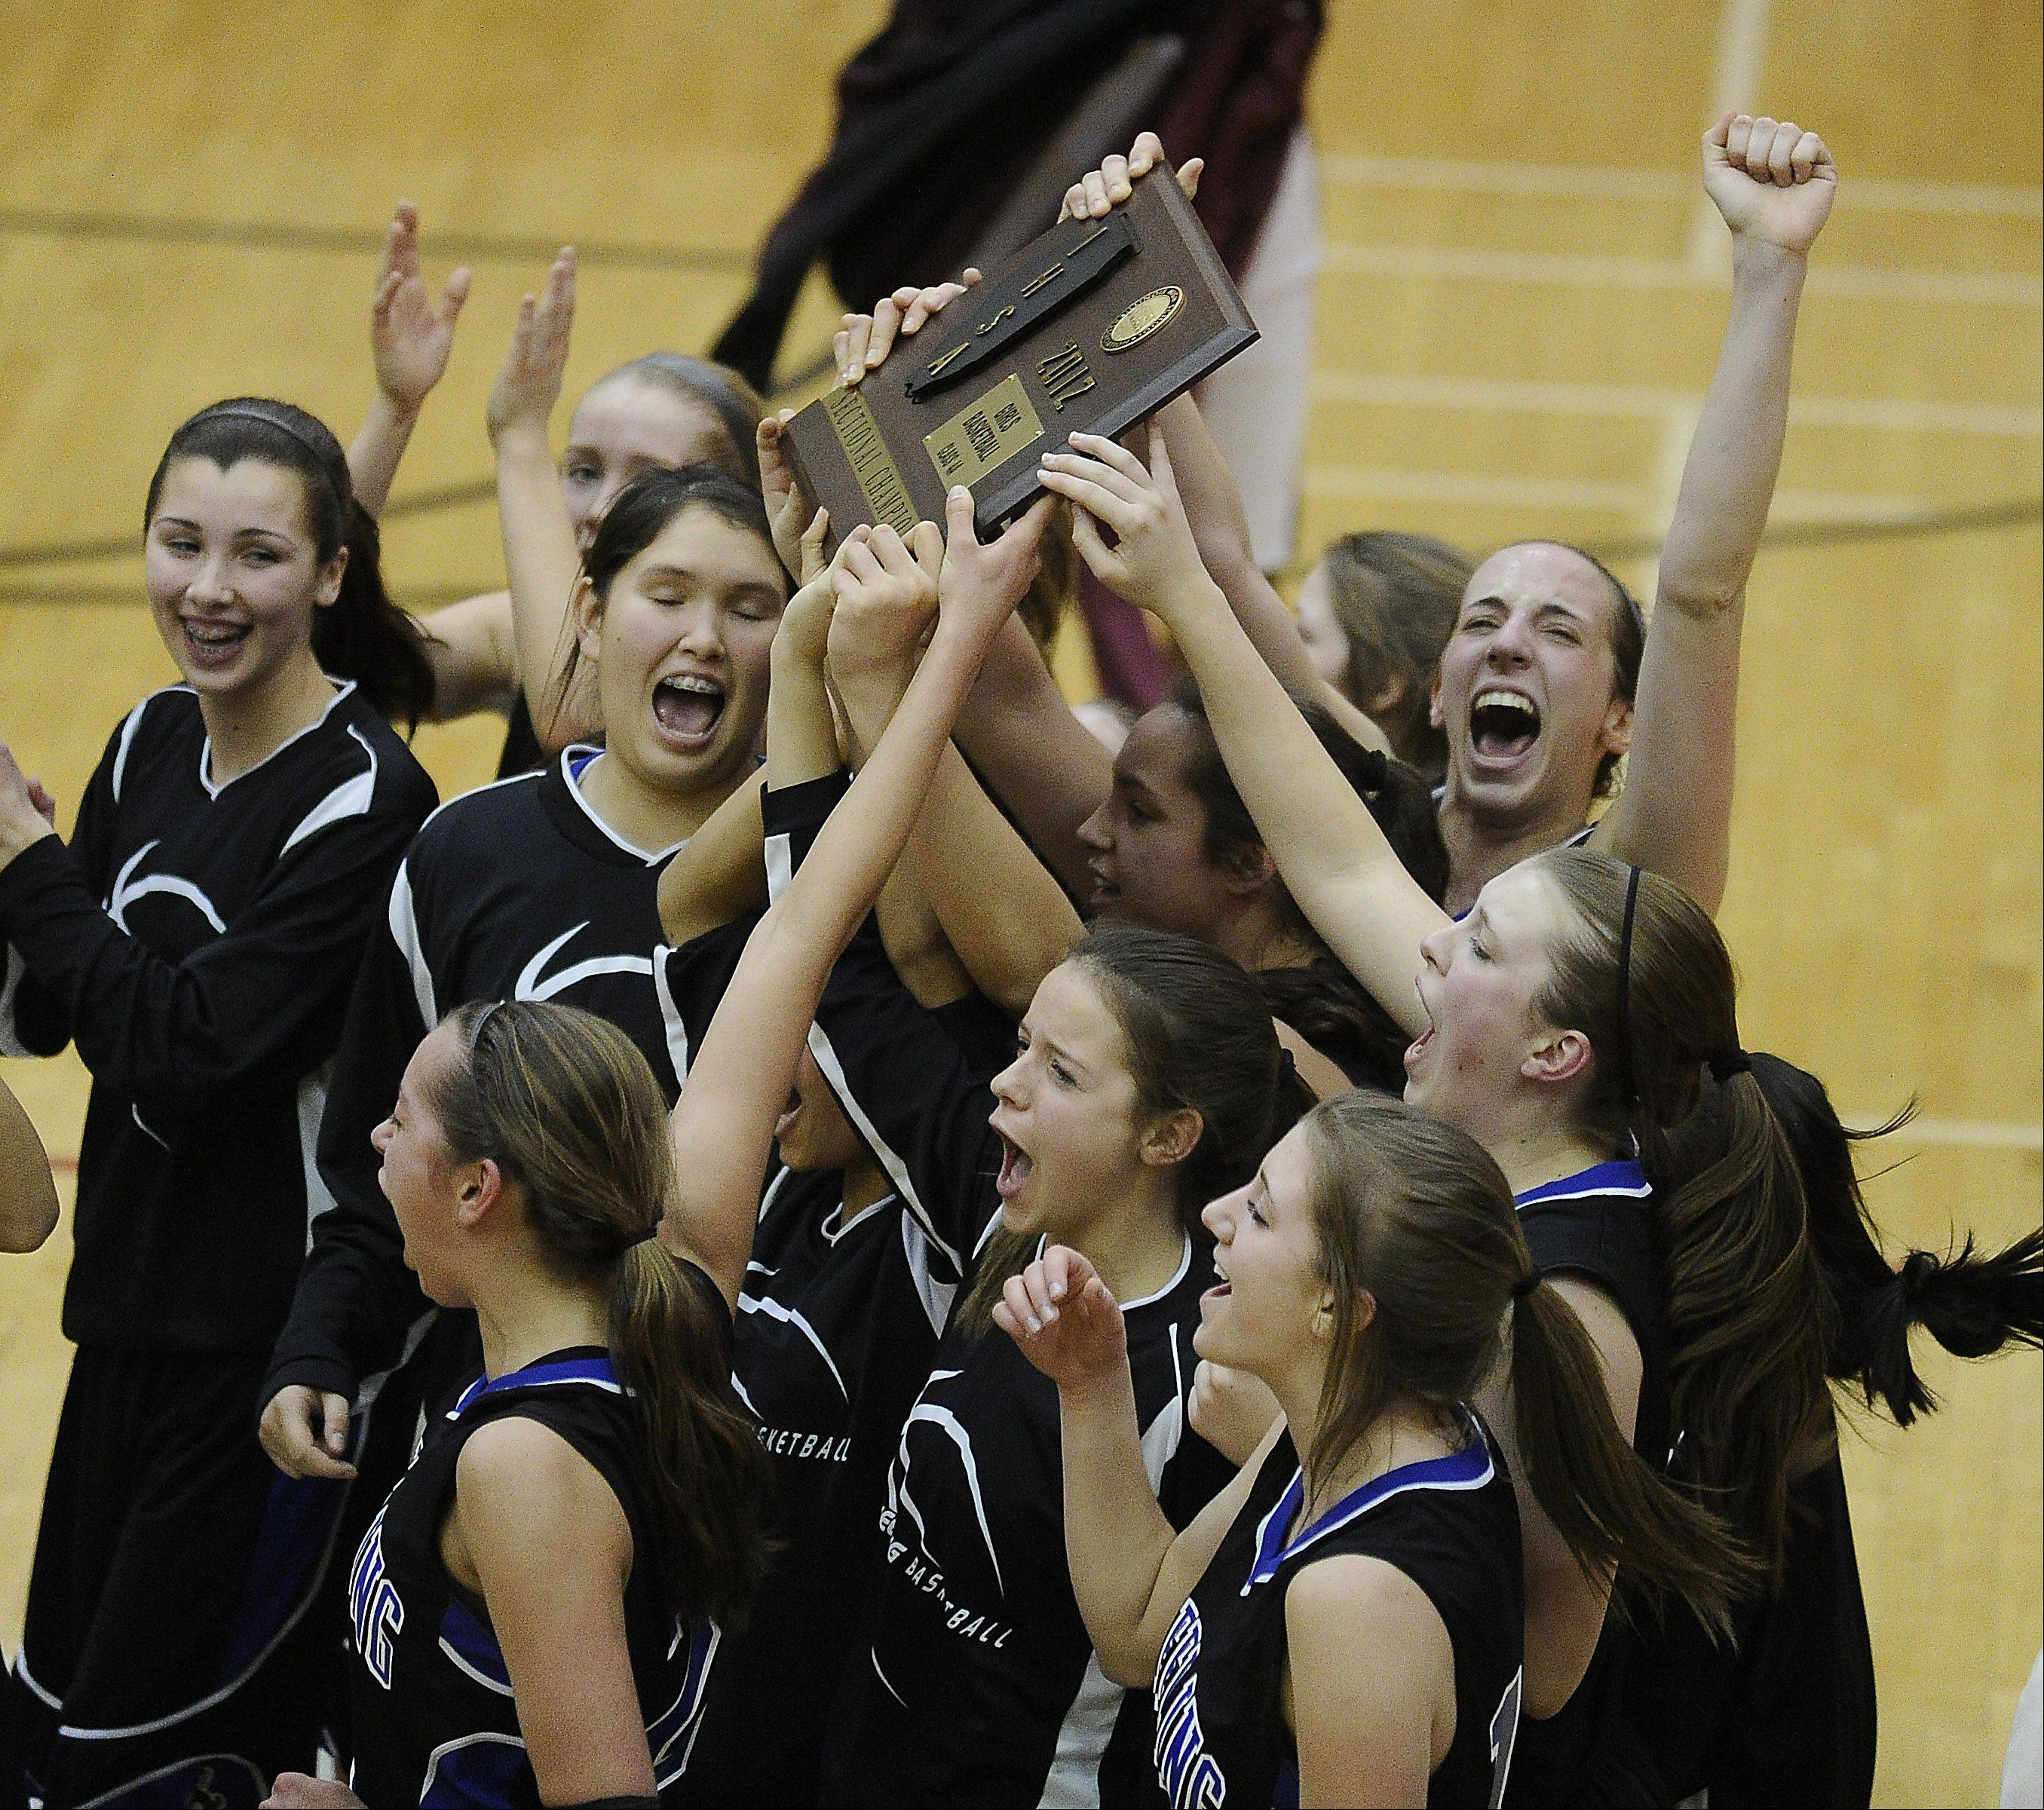 Wheeling celebrates its victory over Zion-Benton in the Class 4A sectional final at Palatine High School on Thursday.